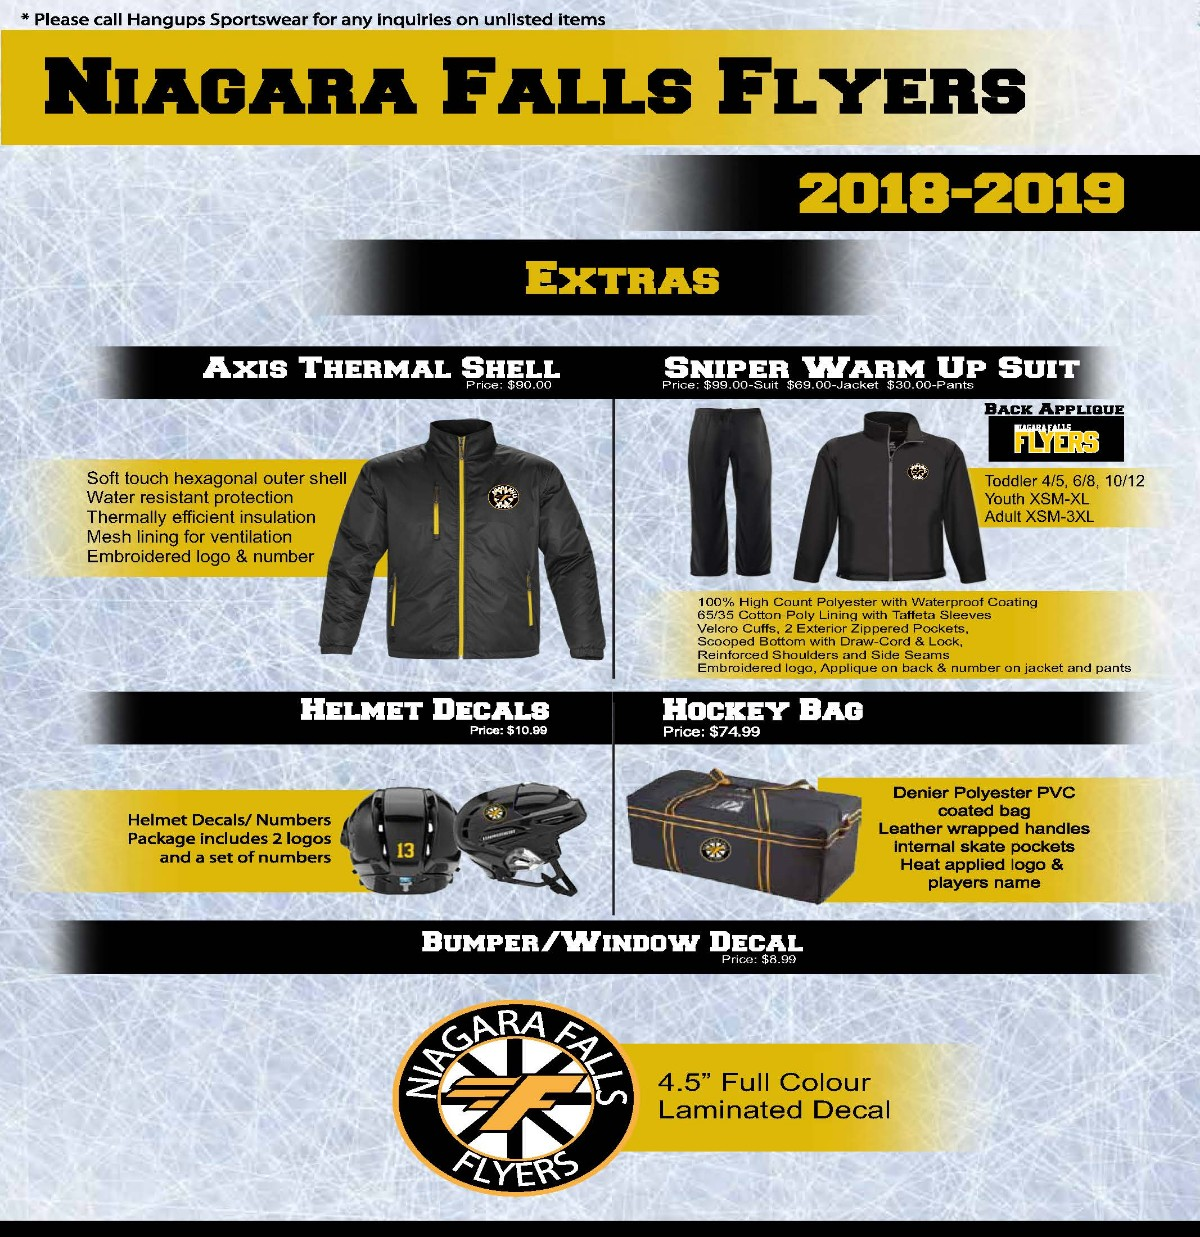 Flyers_Apparel_2018-2019.jpg